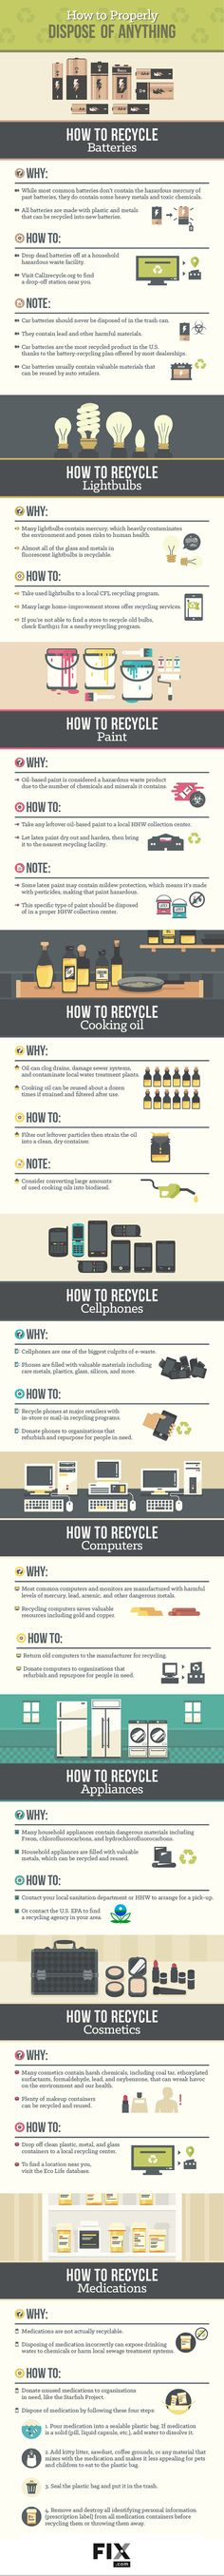 Find out the best way to recycle and dispose of batteries, computers, cosmetics…